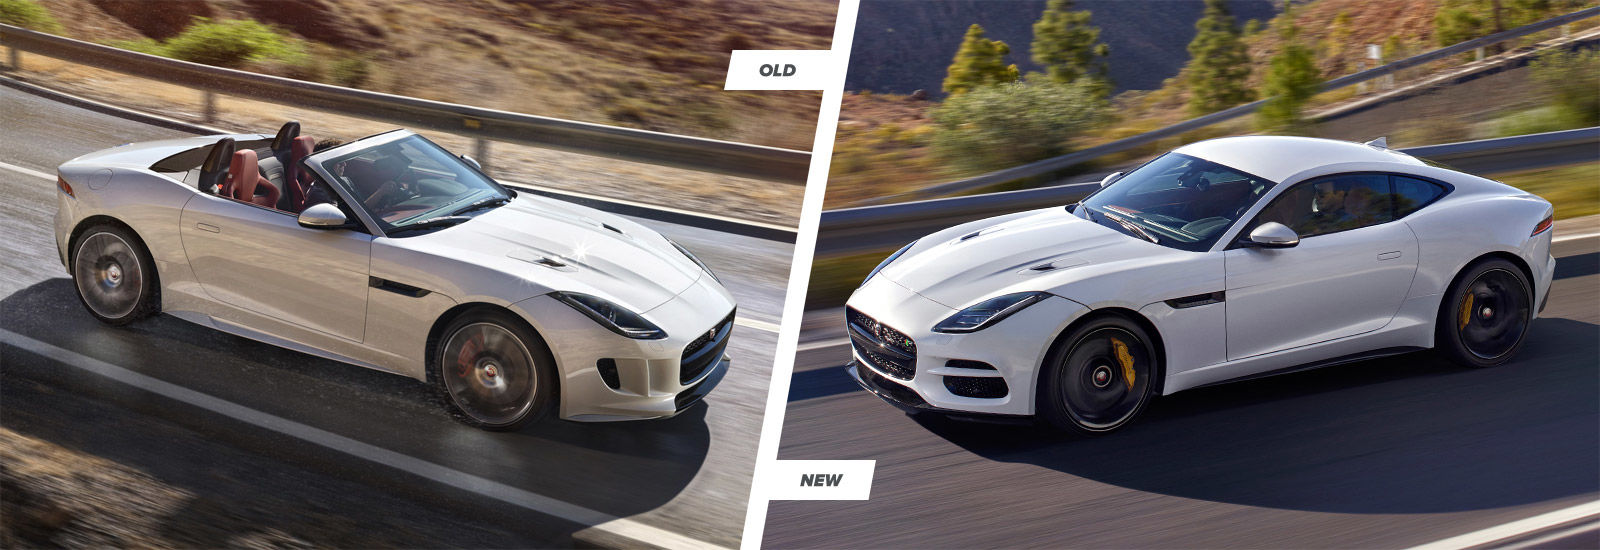 2017 Jaguar F-Type facelift – complete guide | carwow